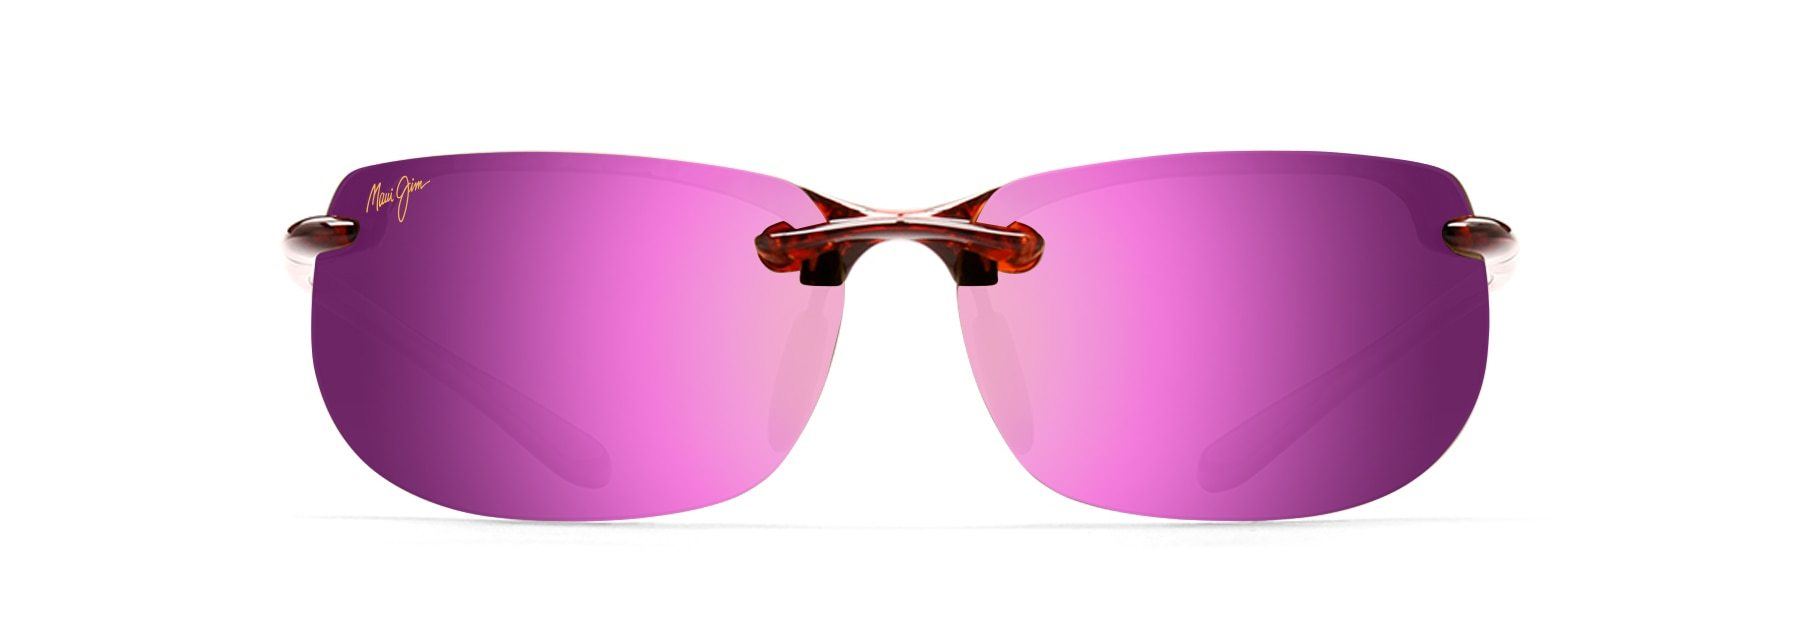 MyMaui Banyans MM412-012 Sunglasses